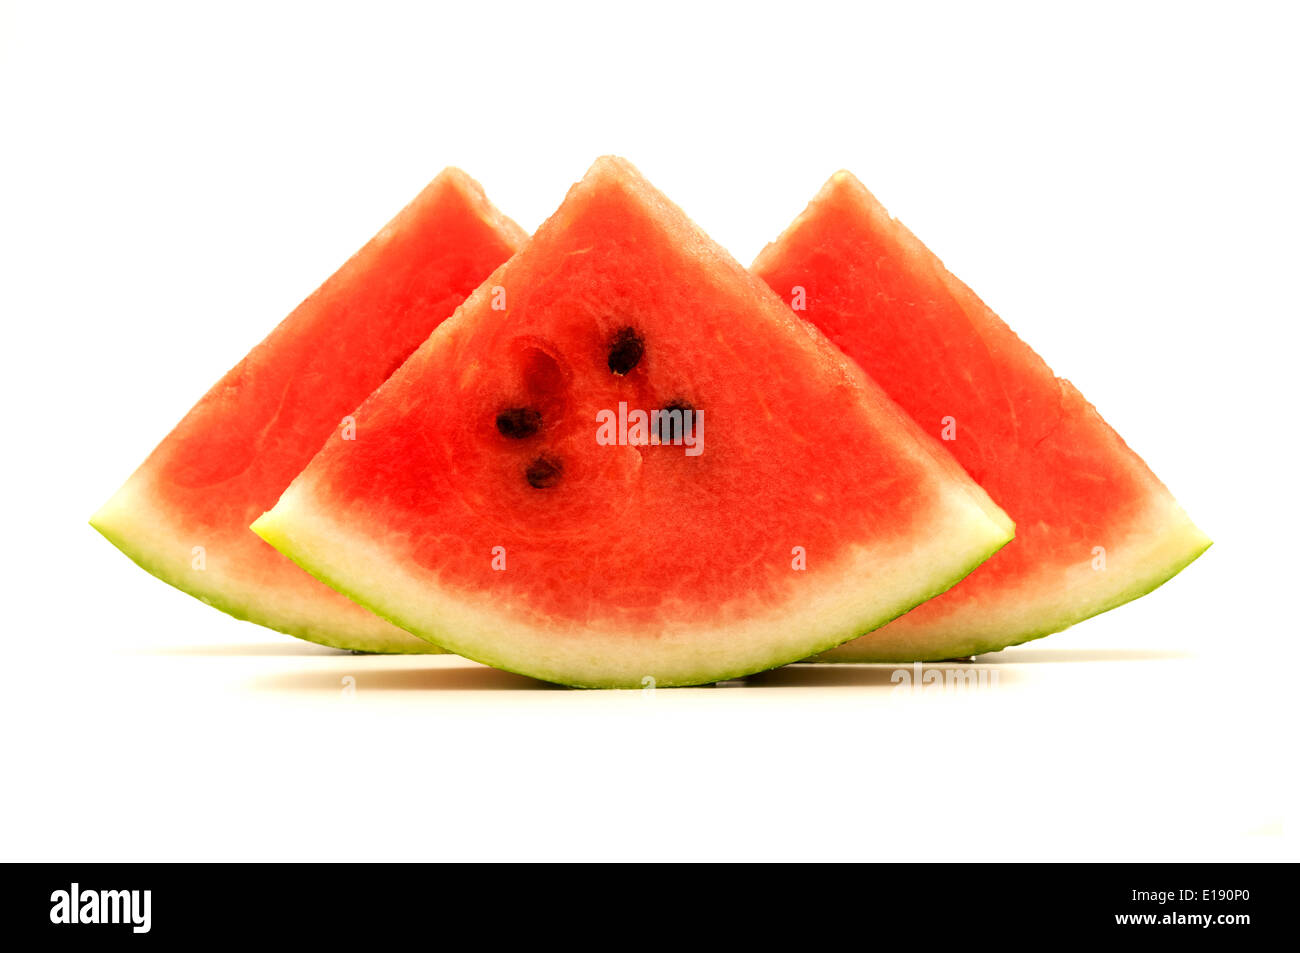 Crimson sweet watermelon wedges on a white background - Stock Image